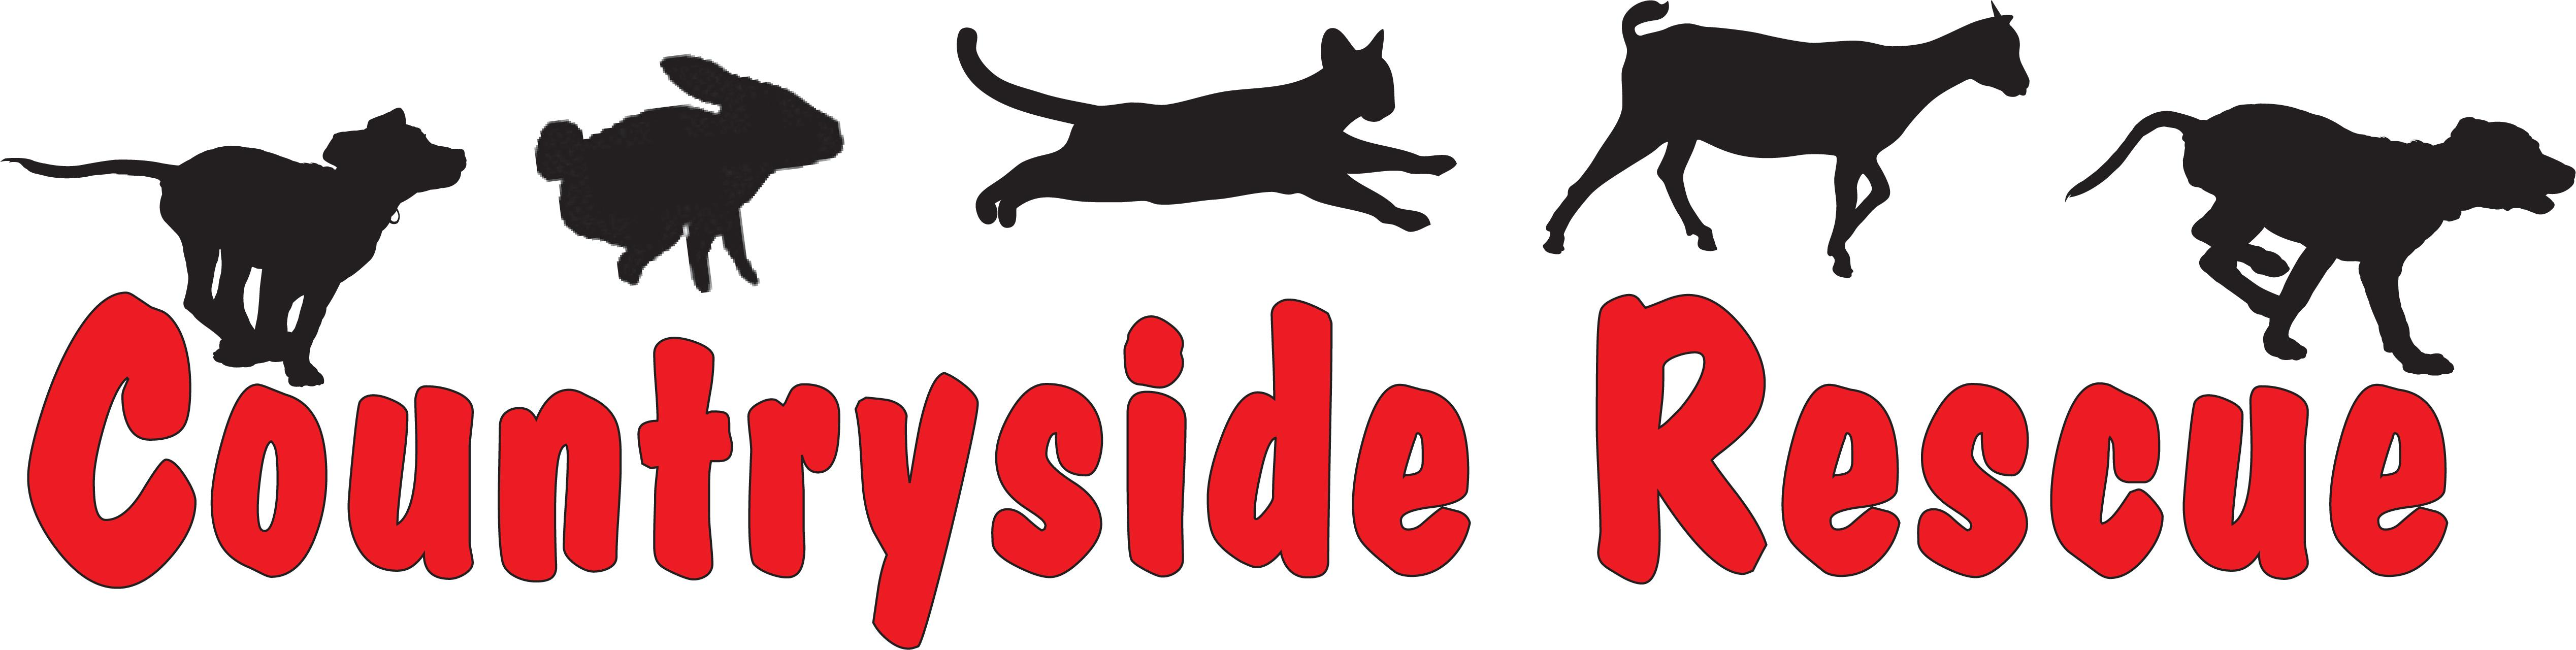 Pets for Adoption at Countryside Rescue & Adoption Center in